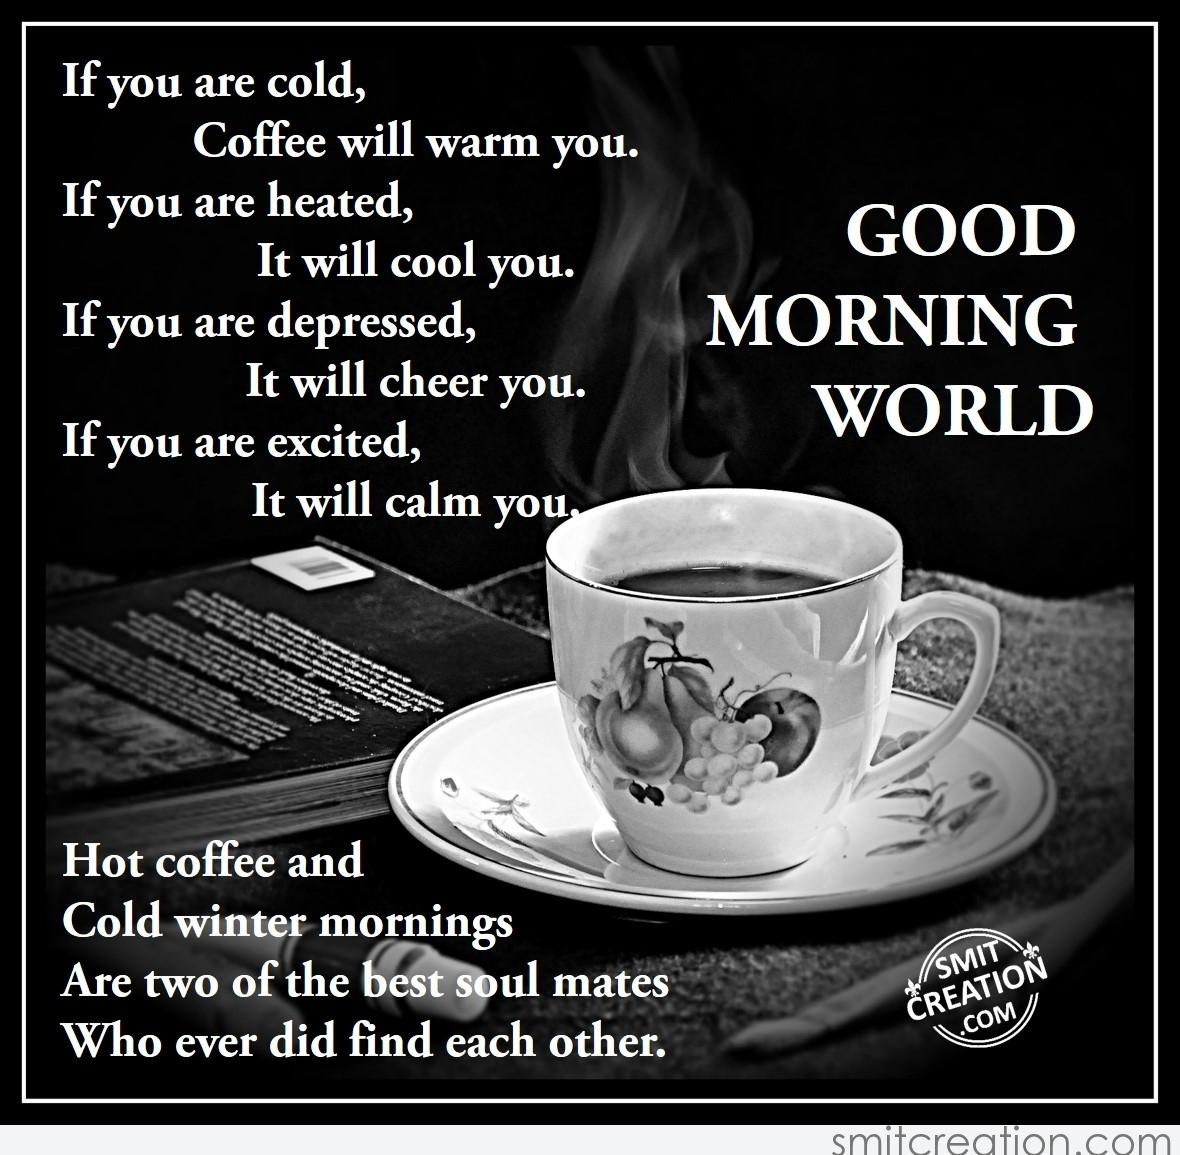 Good morning world pictures and graphics smitcreation page 8 coffee will warm you if you are heated it will cool you if you are depressed it will cheer you if you are excited it will calm you m4hsunfo